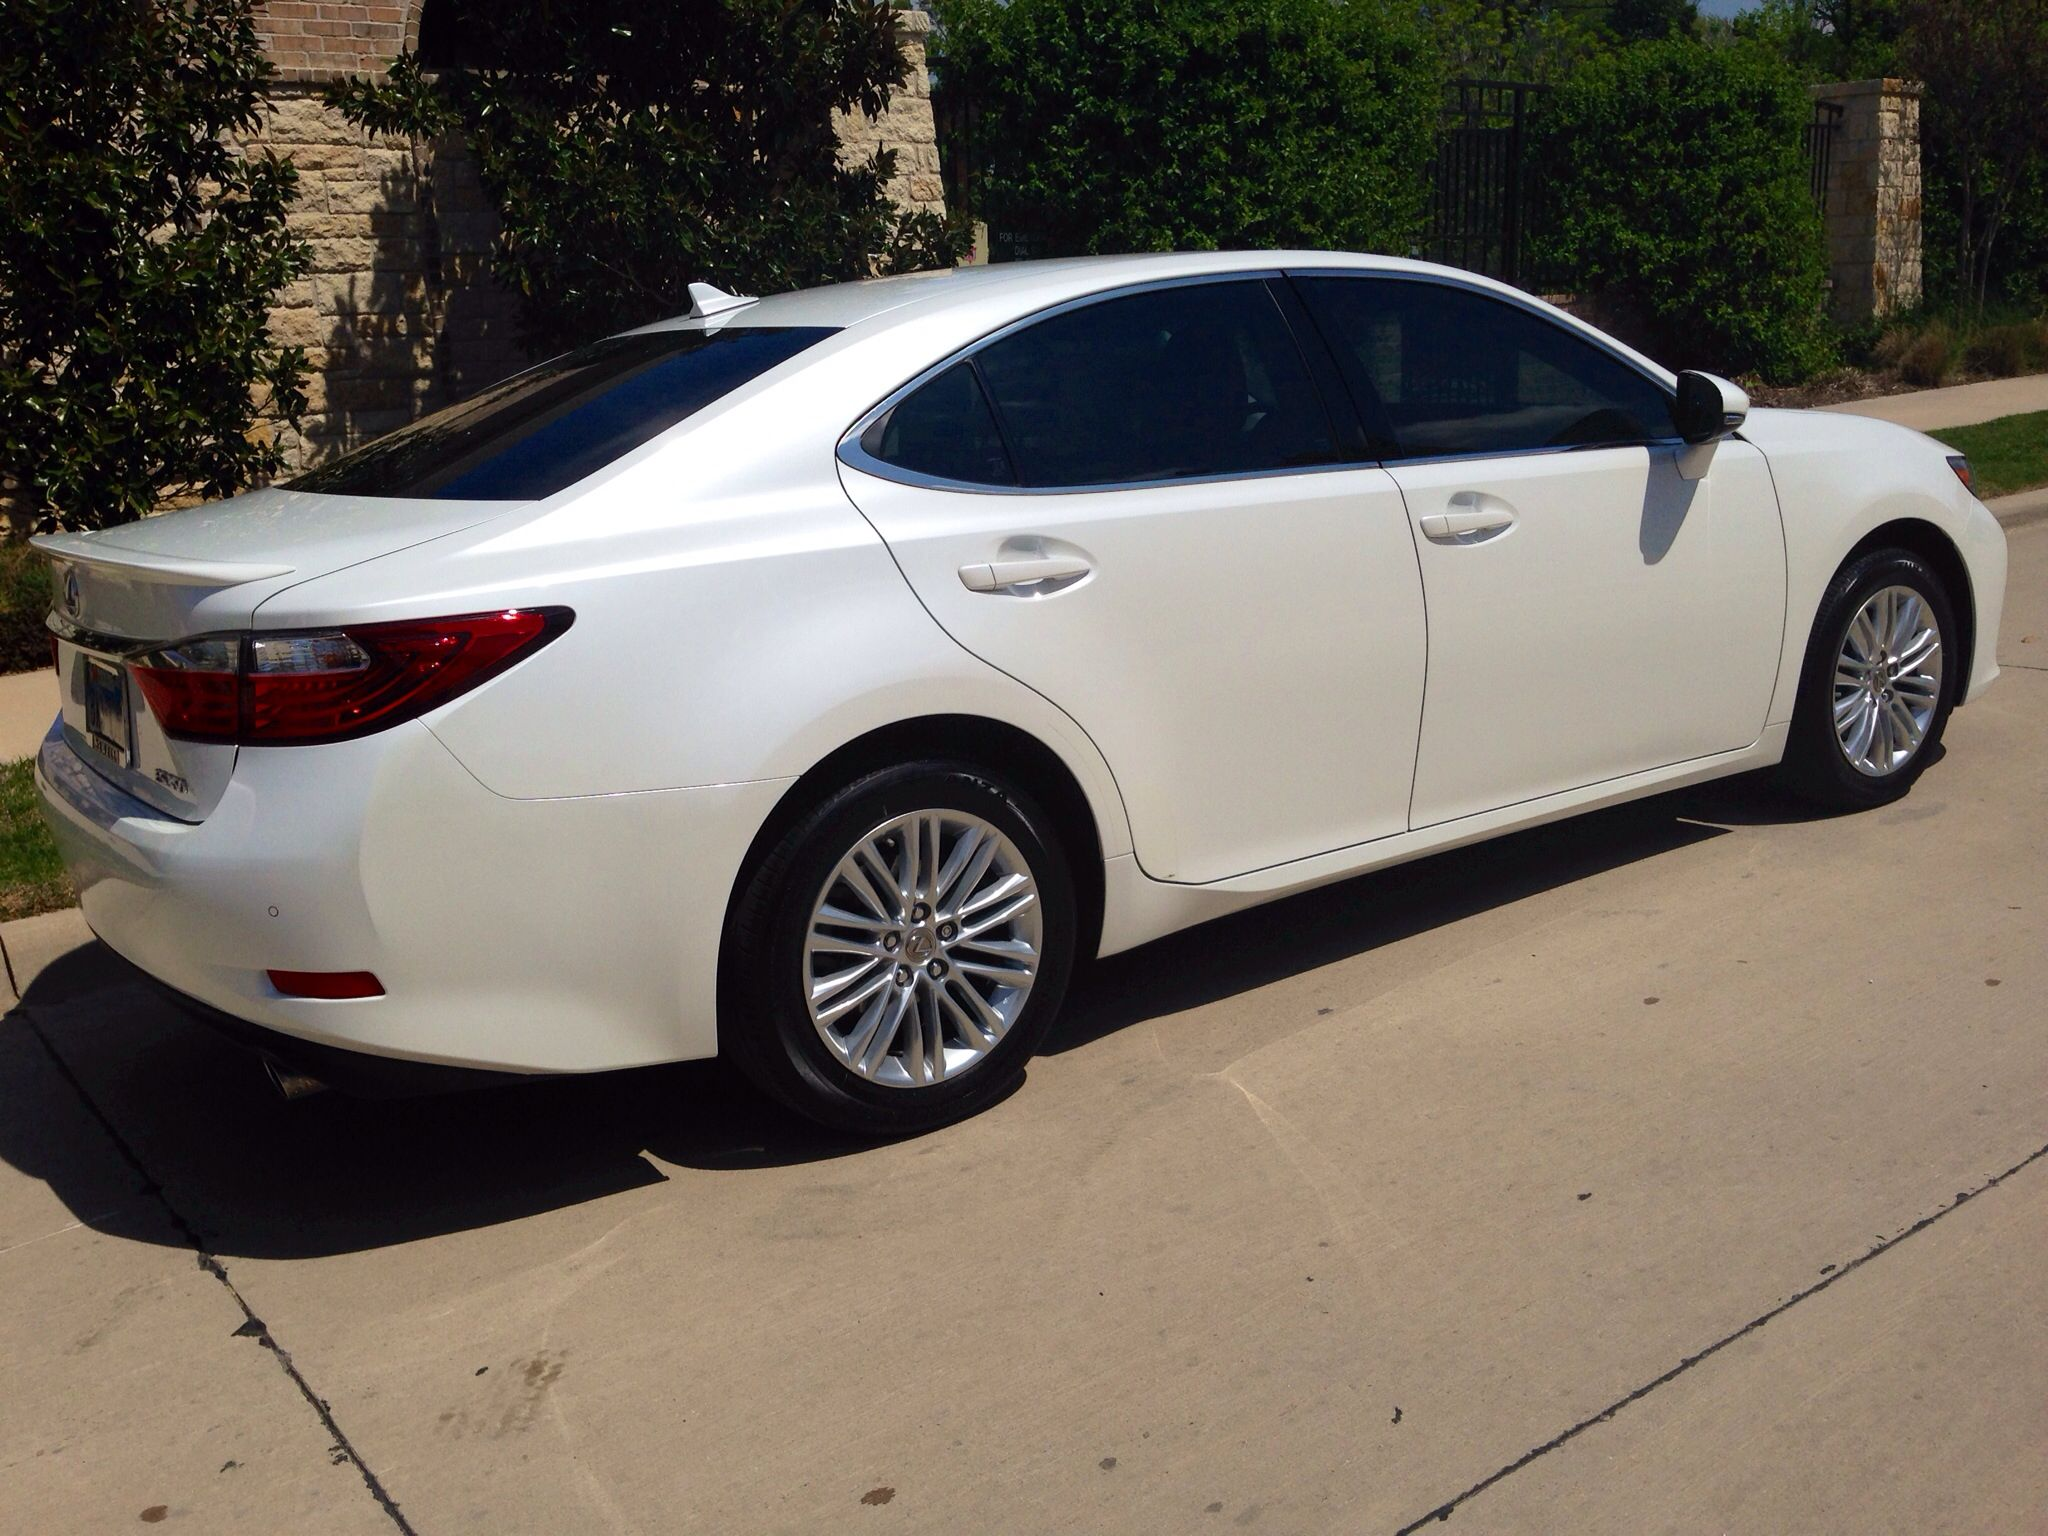 Starfire Pearl paint on Lexus is gorgeous Let this upgrade your